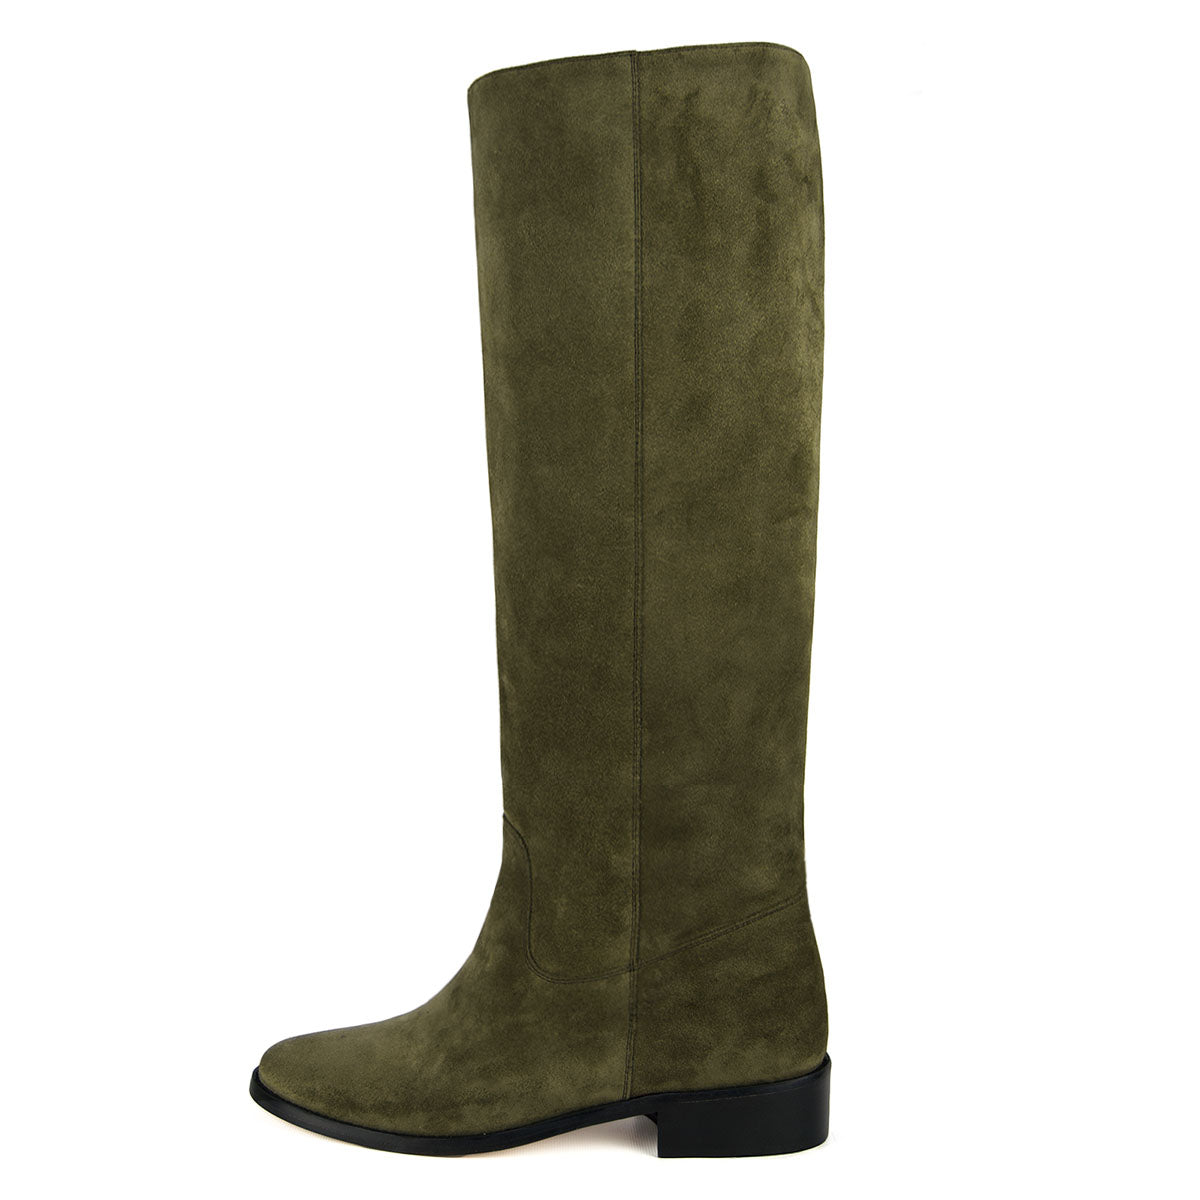 Dalia suede, olive green - wide calf boots, large fit boots, calf fitting boots, narrow calf boots